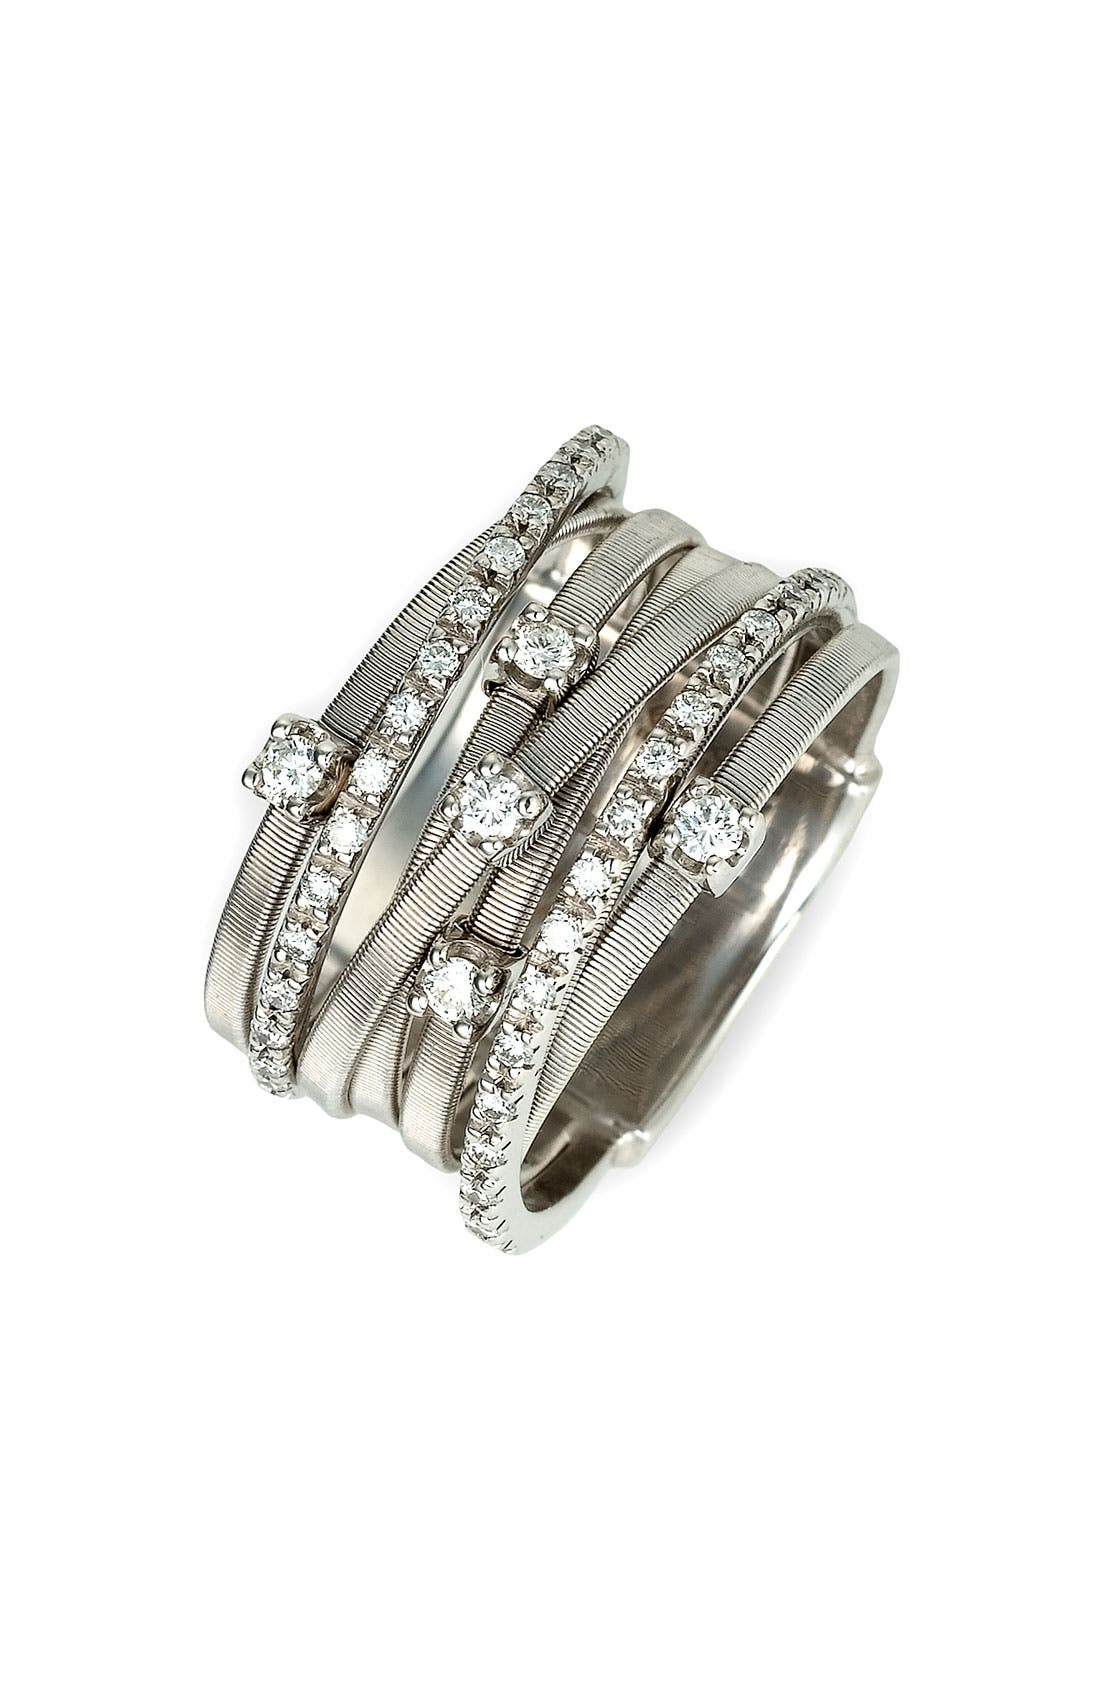 Main Image - Marco Bicego 'Goa' Seven Band Diamond Ring